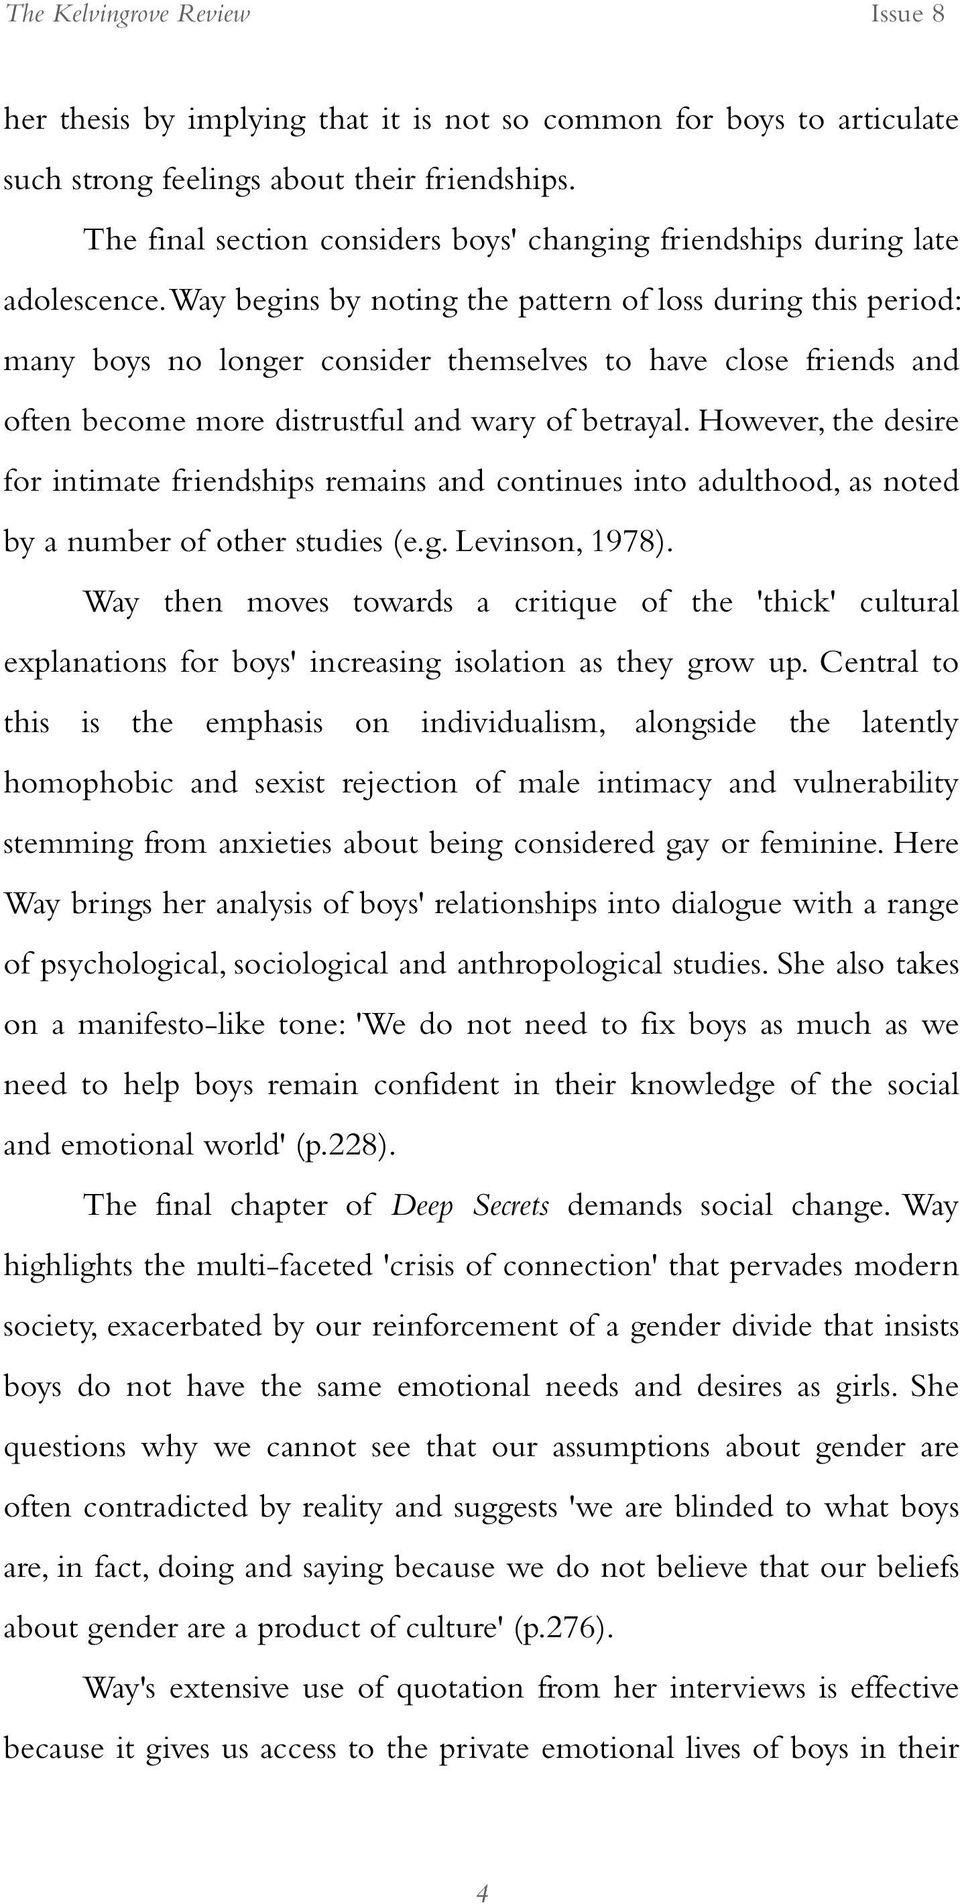 However, the desire for intimate friendships remains and continues into adulthood, as noted by a number of other studies (e.g. Levinson, 1978).